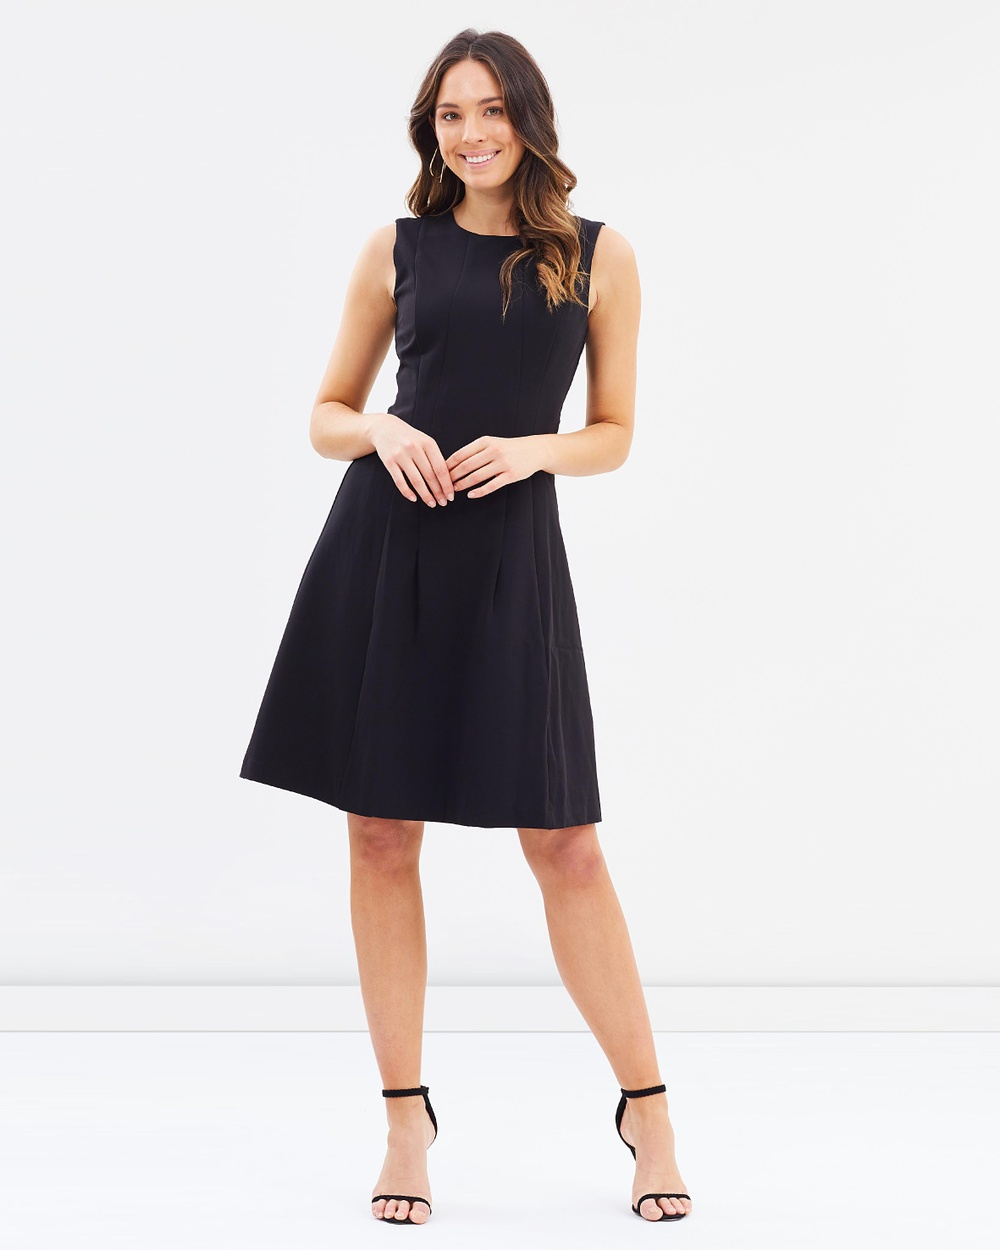 Forcast Leanna A Line Dress Dresses Black Leanna A-Line Dress